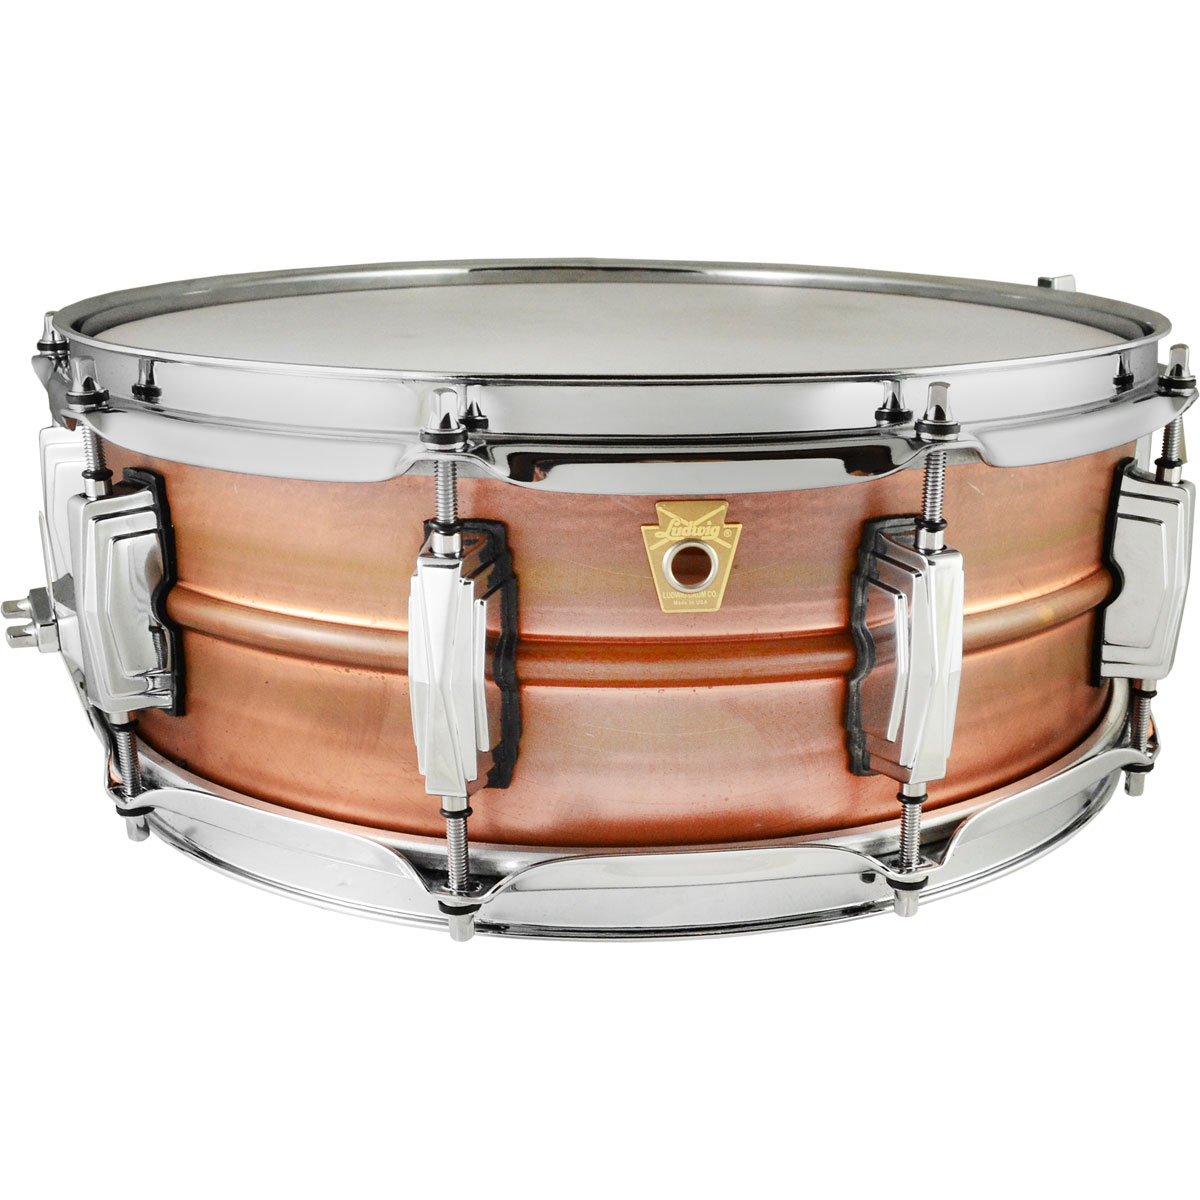 "Ludwig 5"" x 14"" Raw Copper Phonic Snare Drum with Imperial Lugs (Used)"